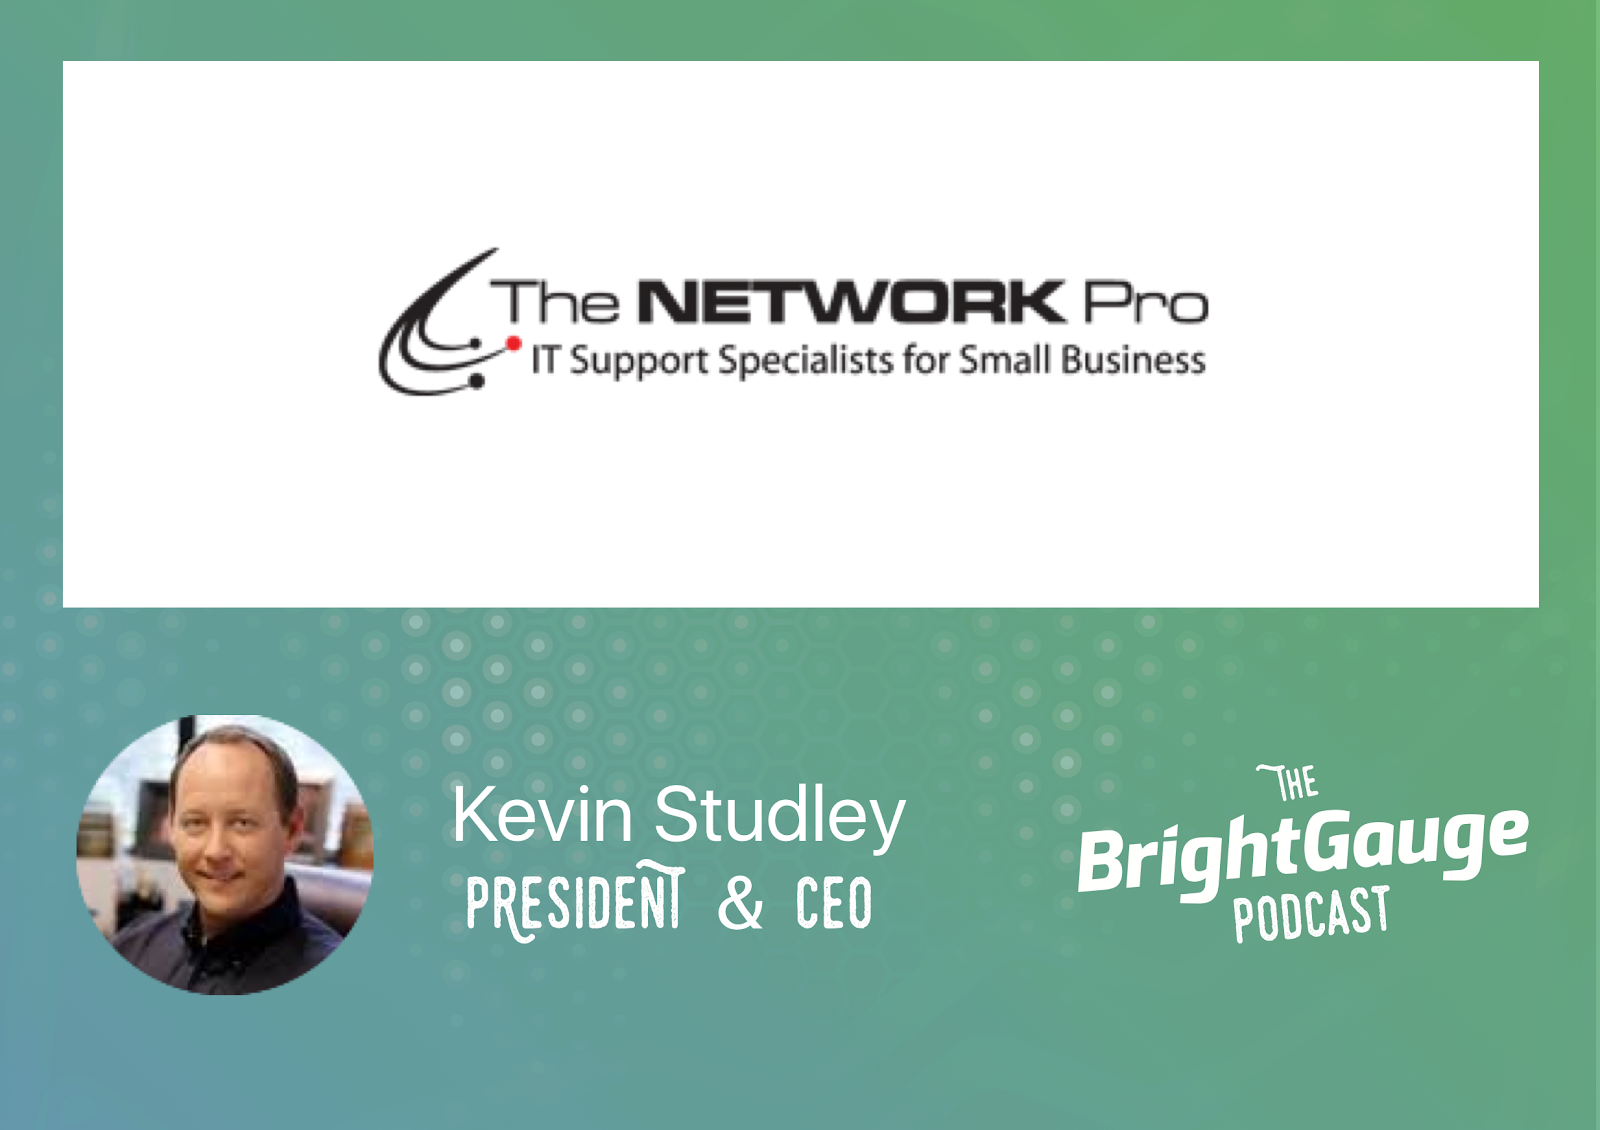 [Podcast] Episode 23 with Kevin Studley of The Network Pro